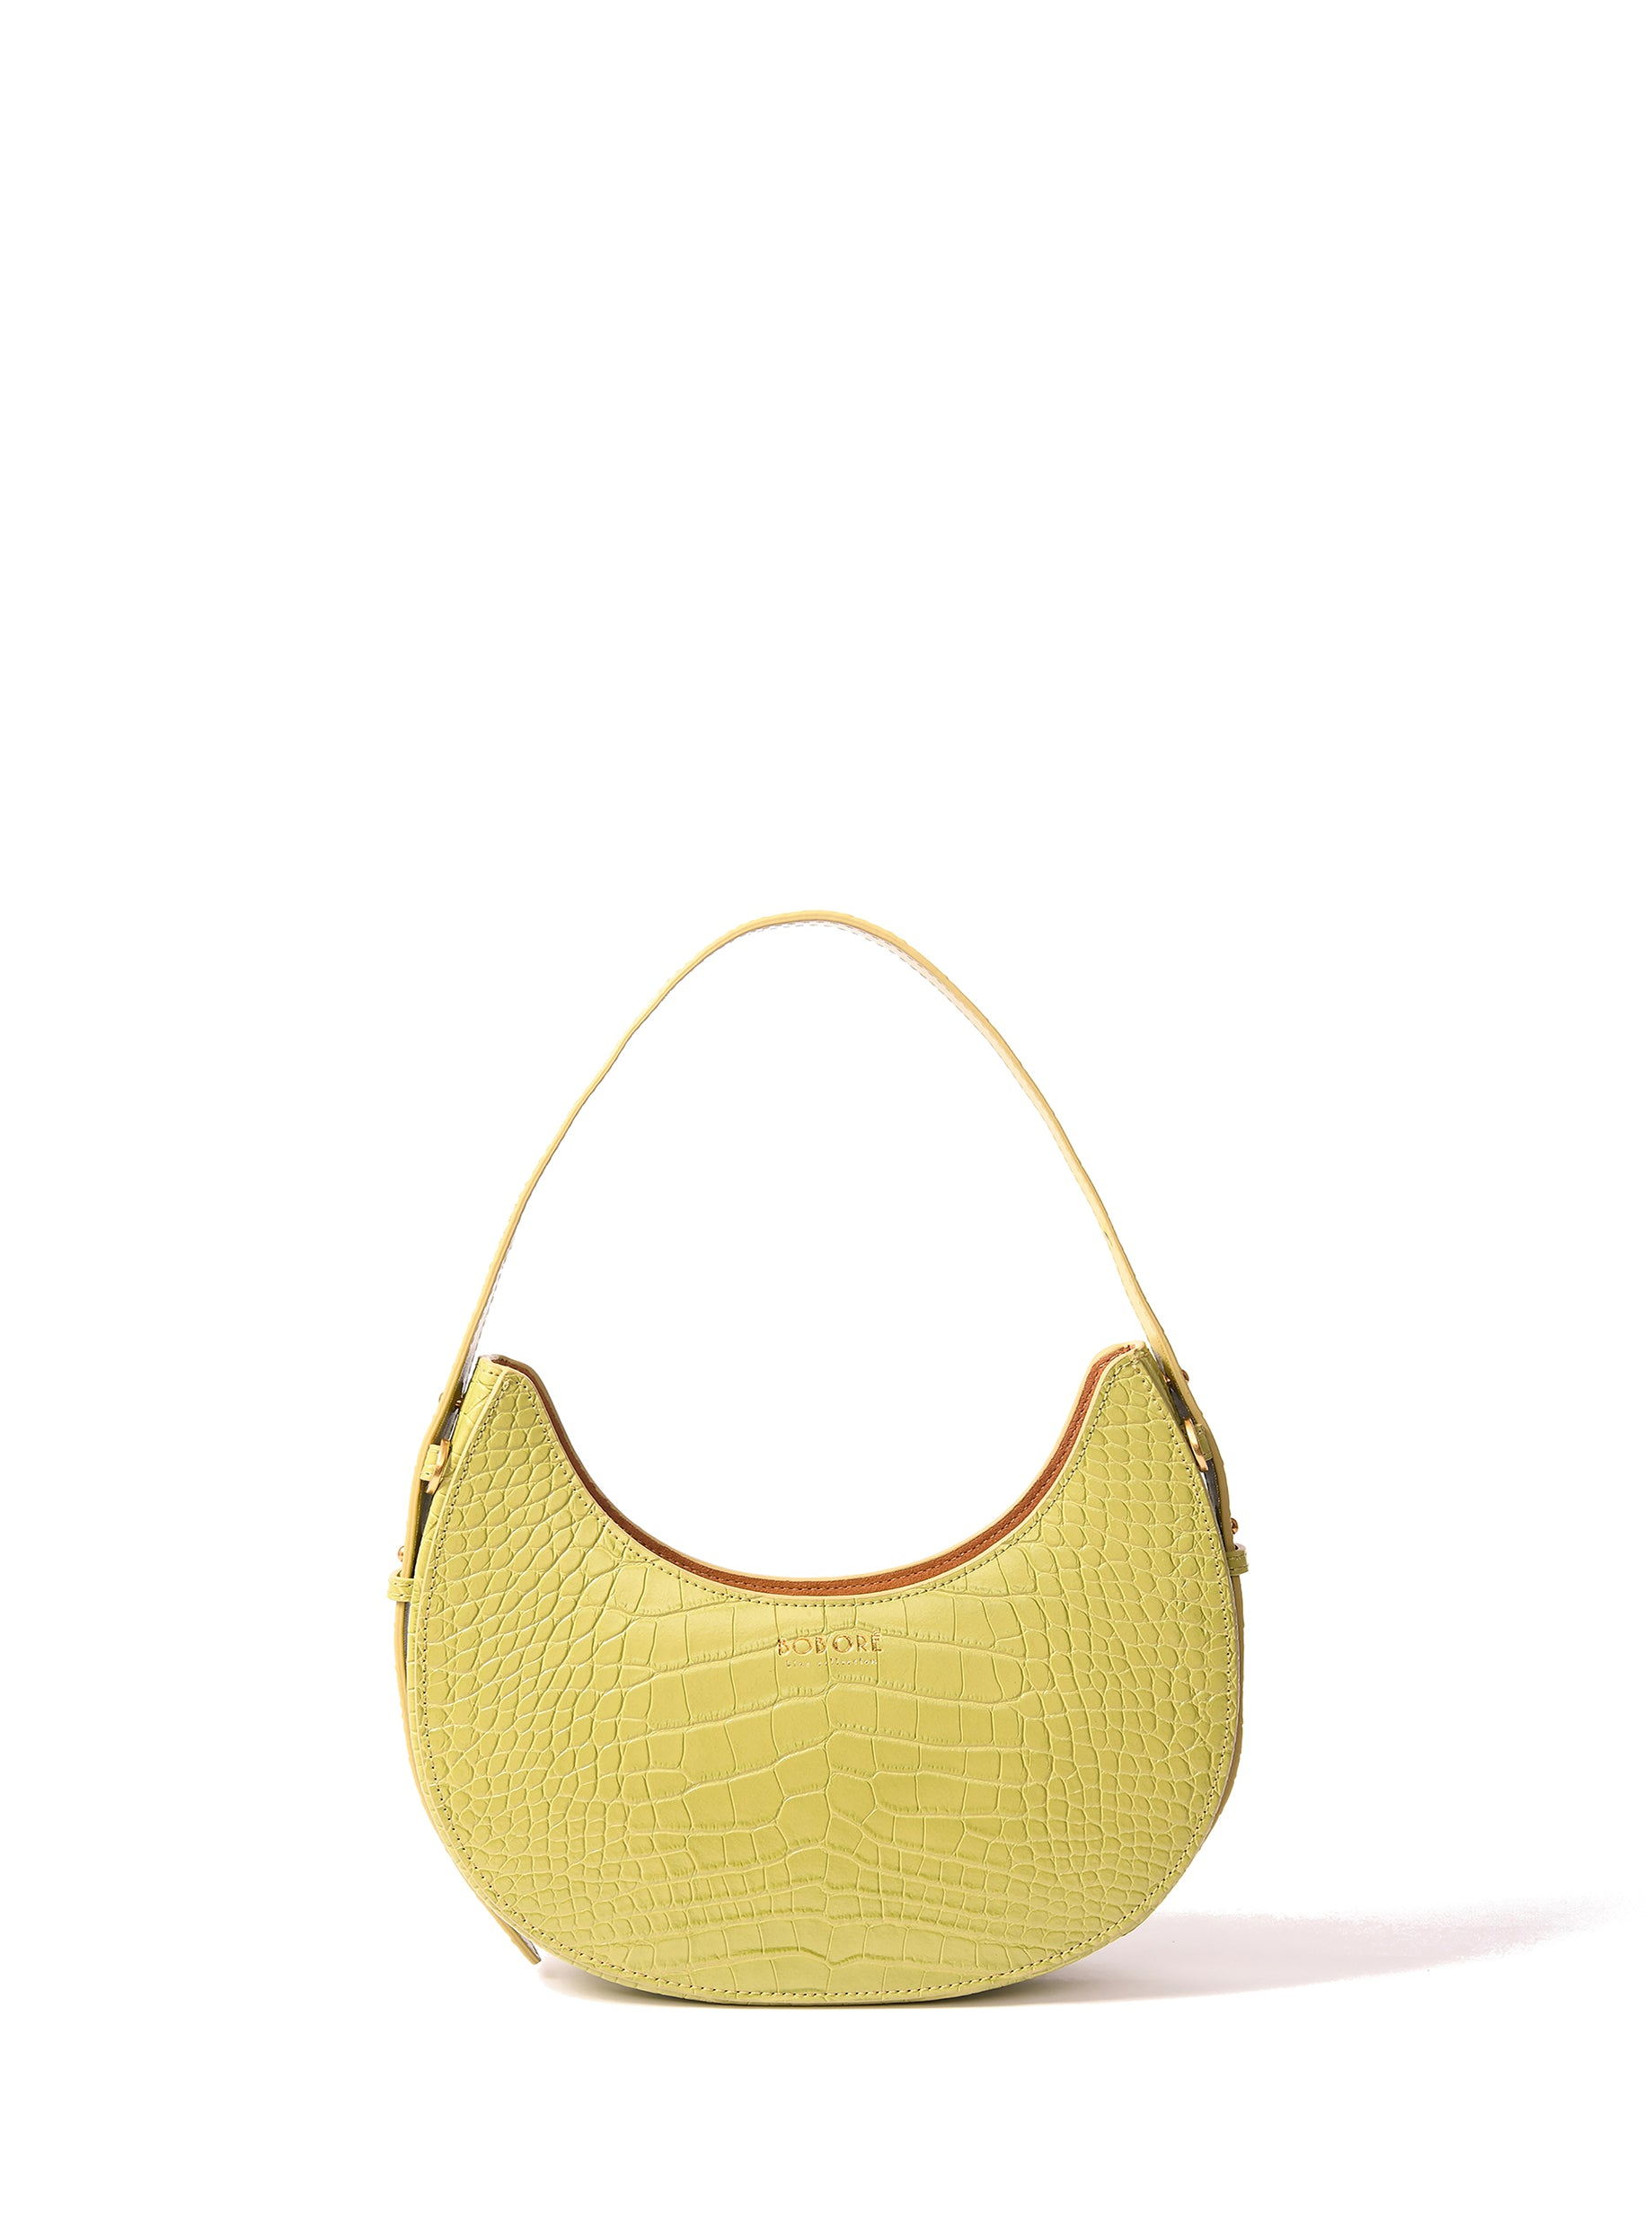 Naomi Moon Bag in croco embossed leather, Green